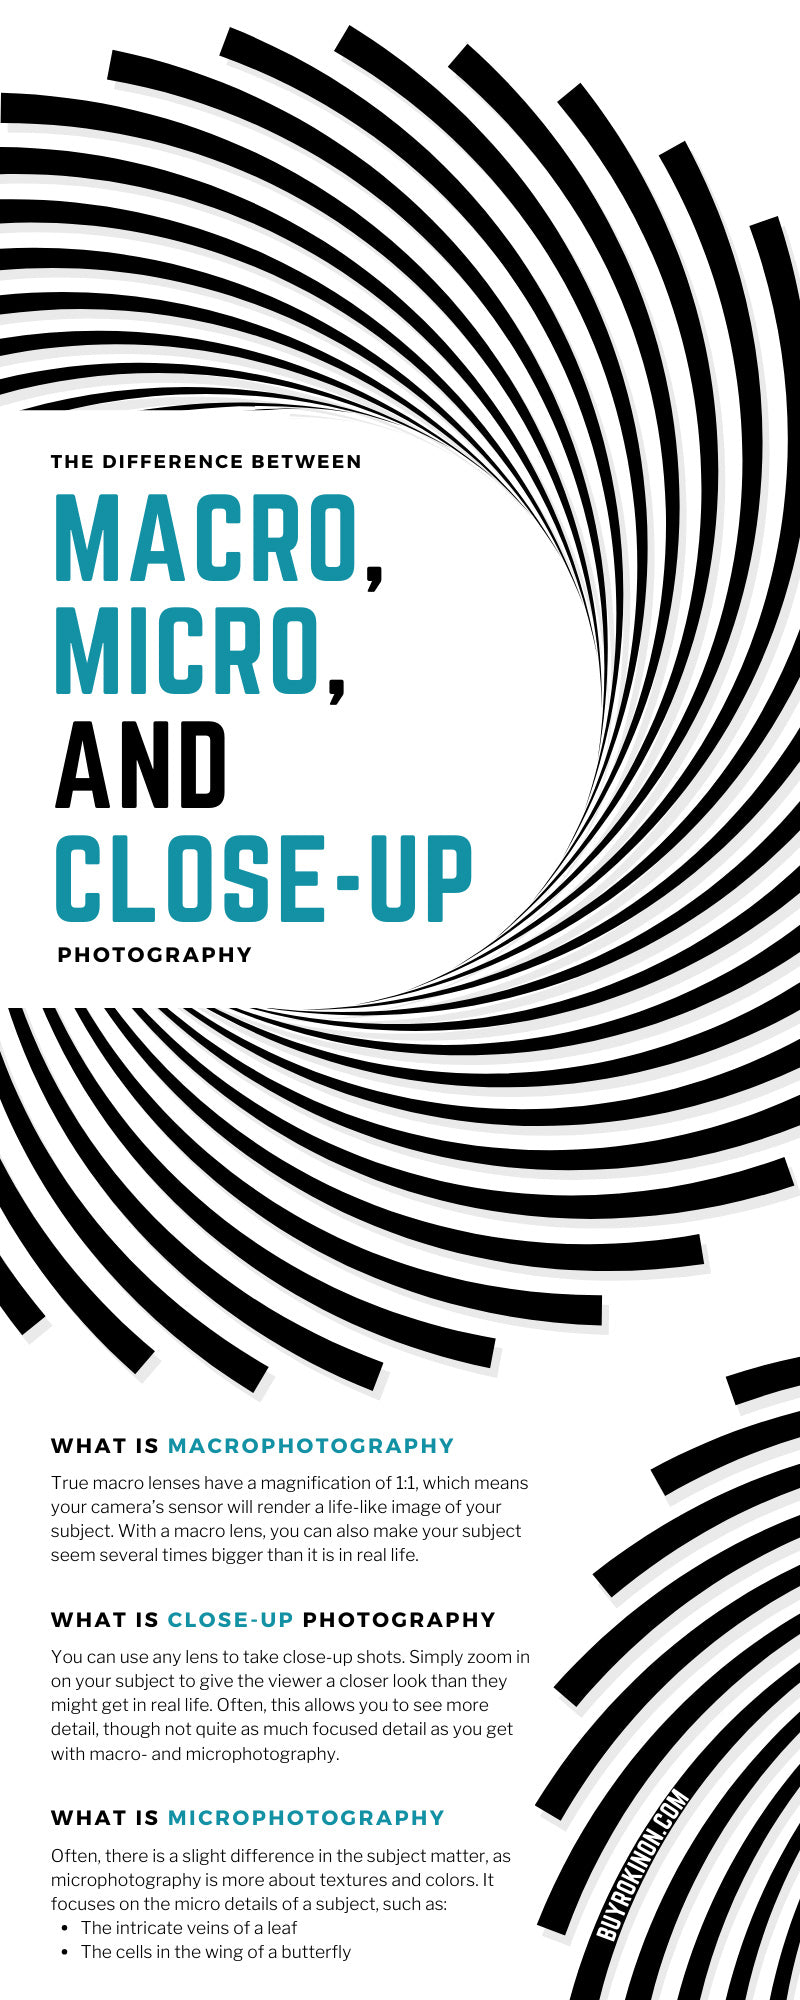 The Difference Between Macro, Micro, and Close-up Photography